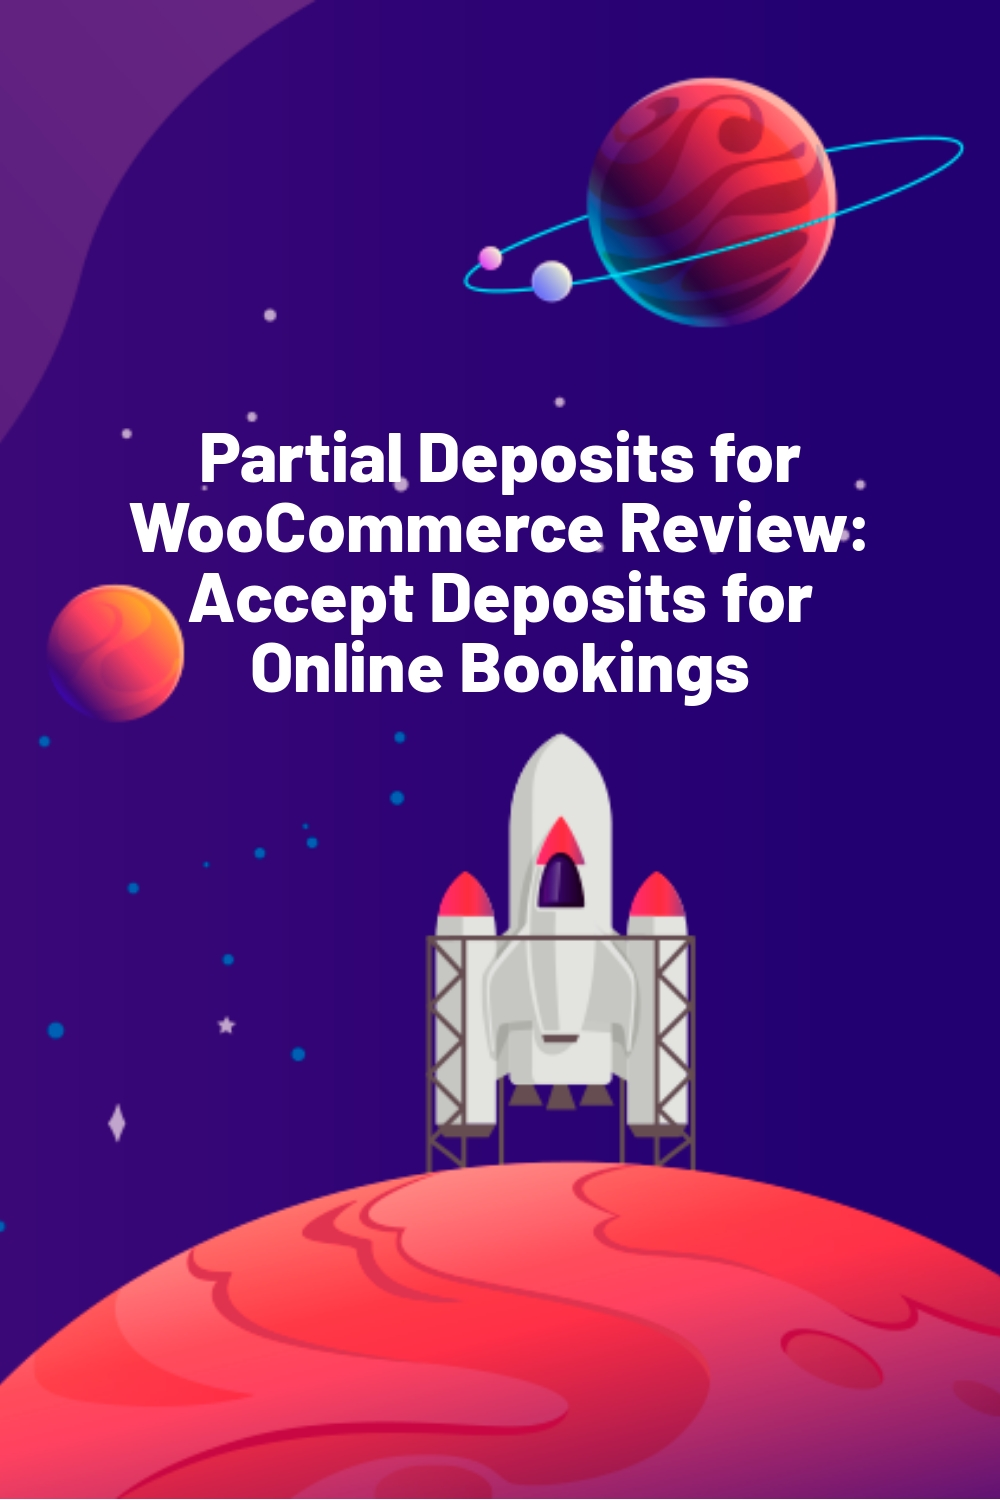 Partial Deposits for WooCommerce Review: Accept Deposits for Online Bookings